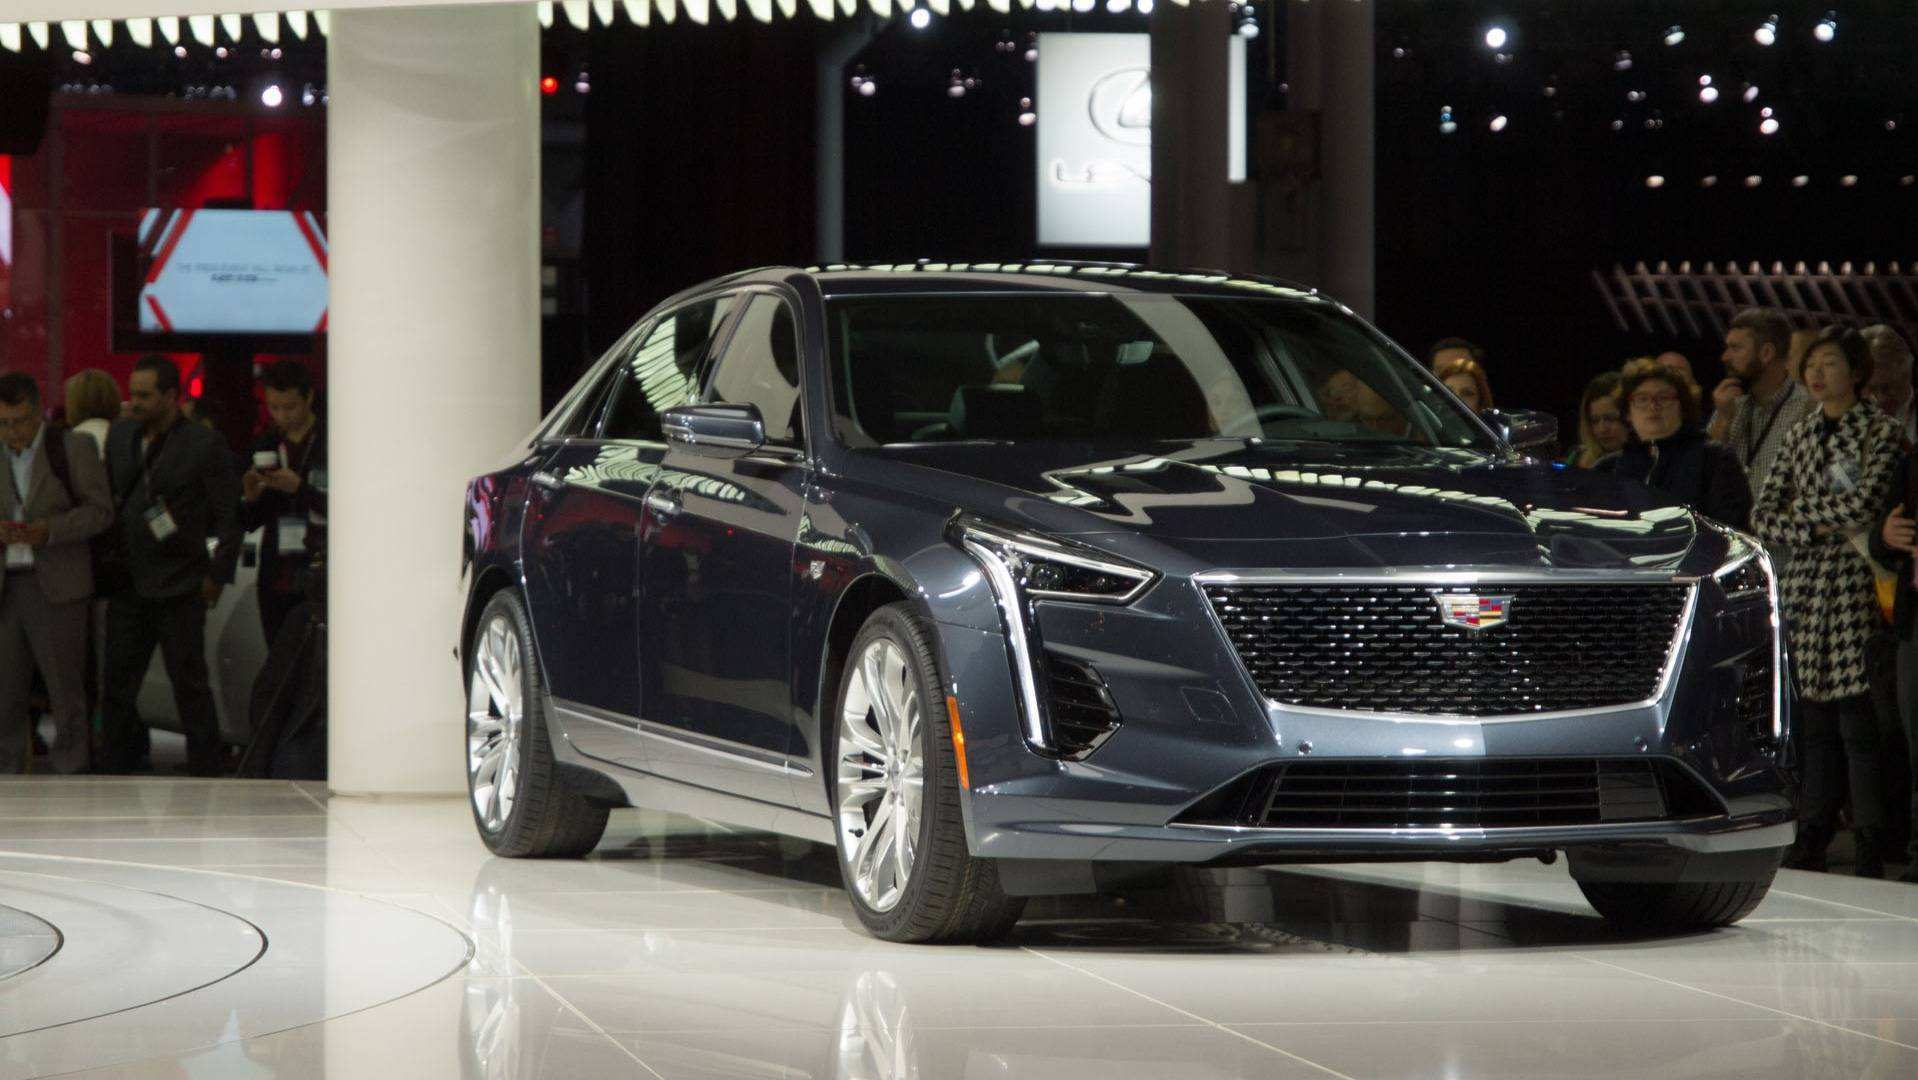 82 All New 2020 Cadillac Ct6 V8 Spy Shoot